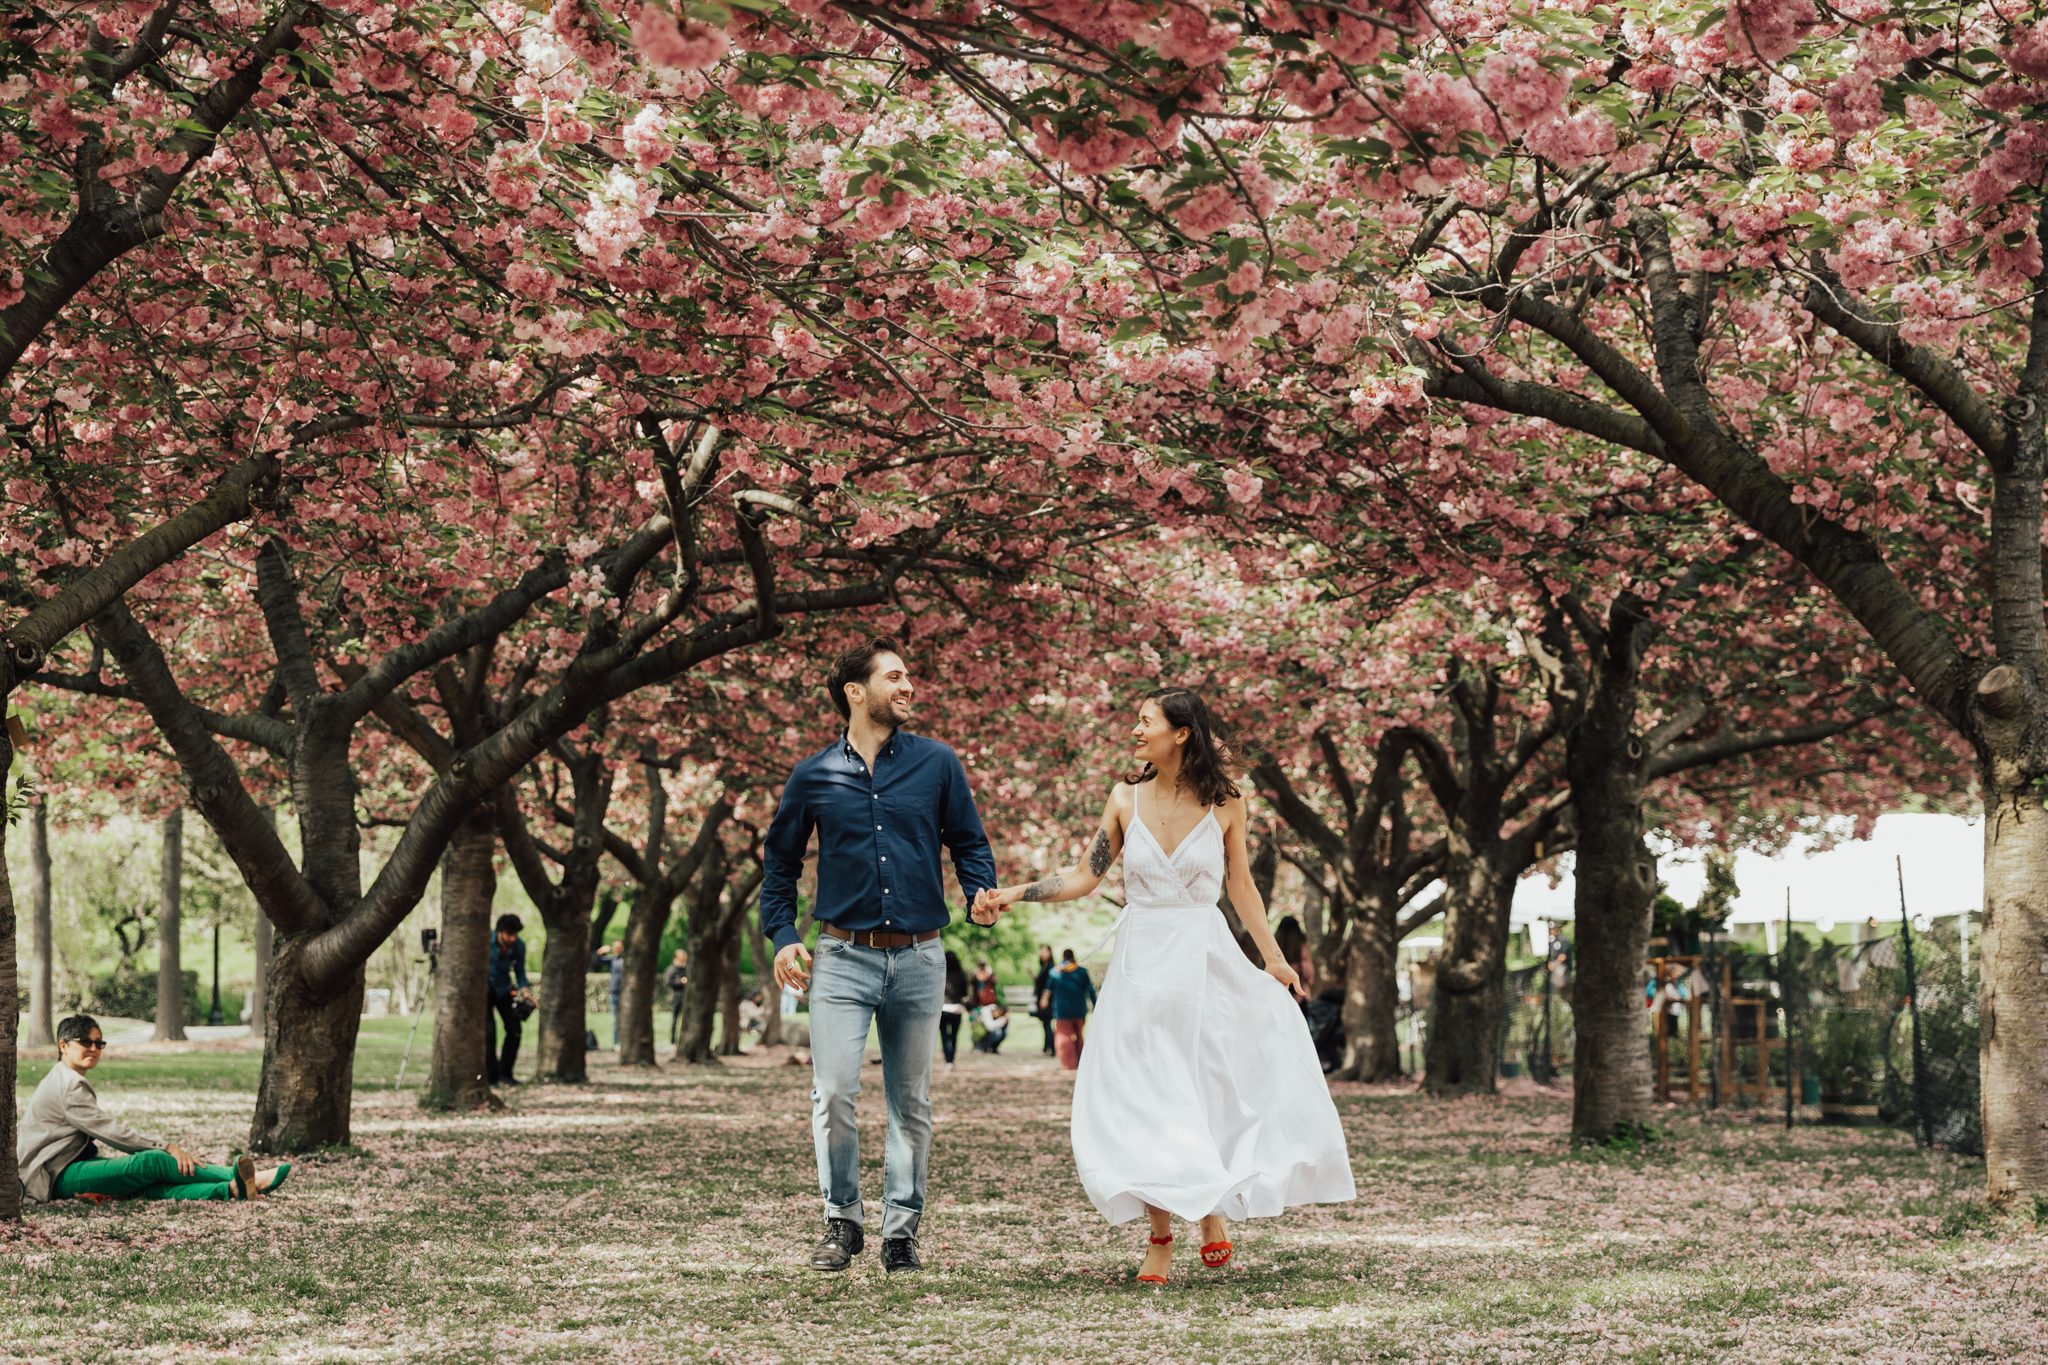 Wedding at Brooklyn Botanic Gardens